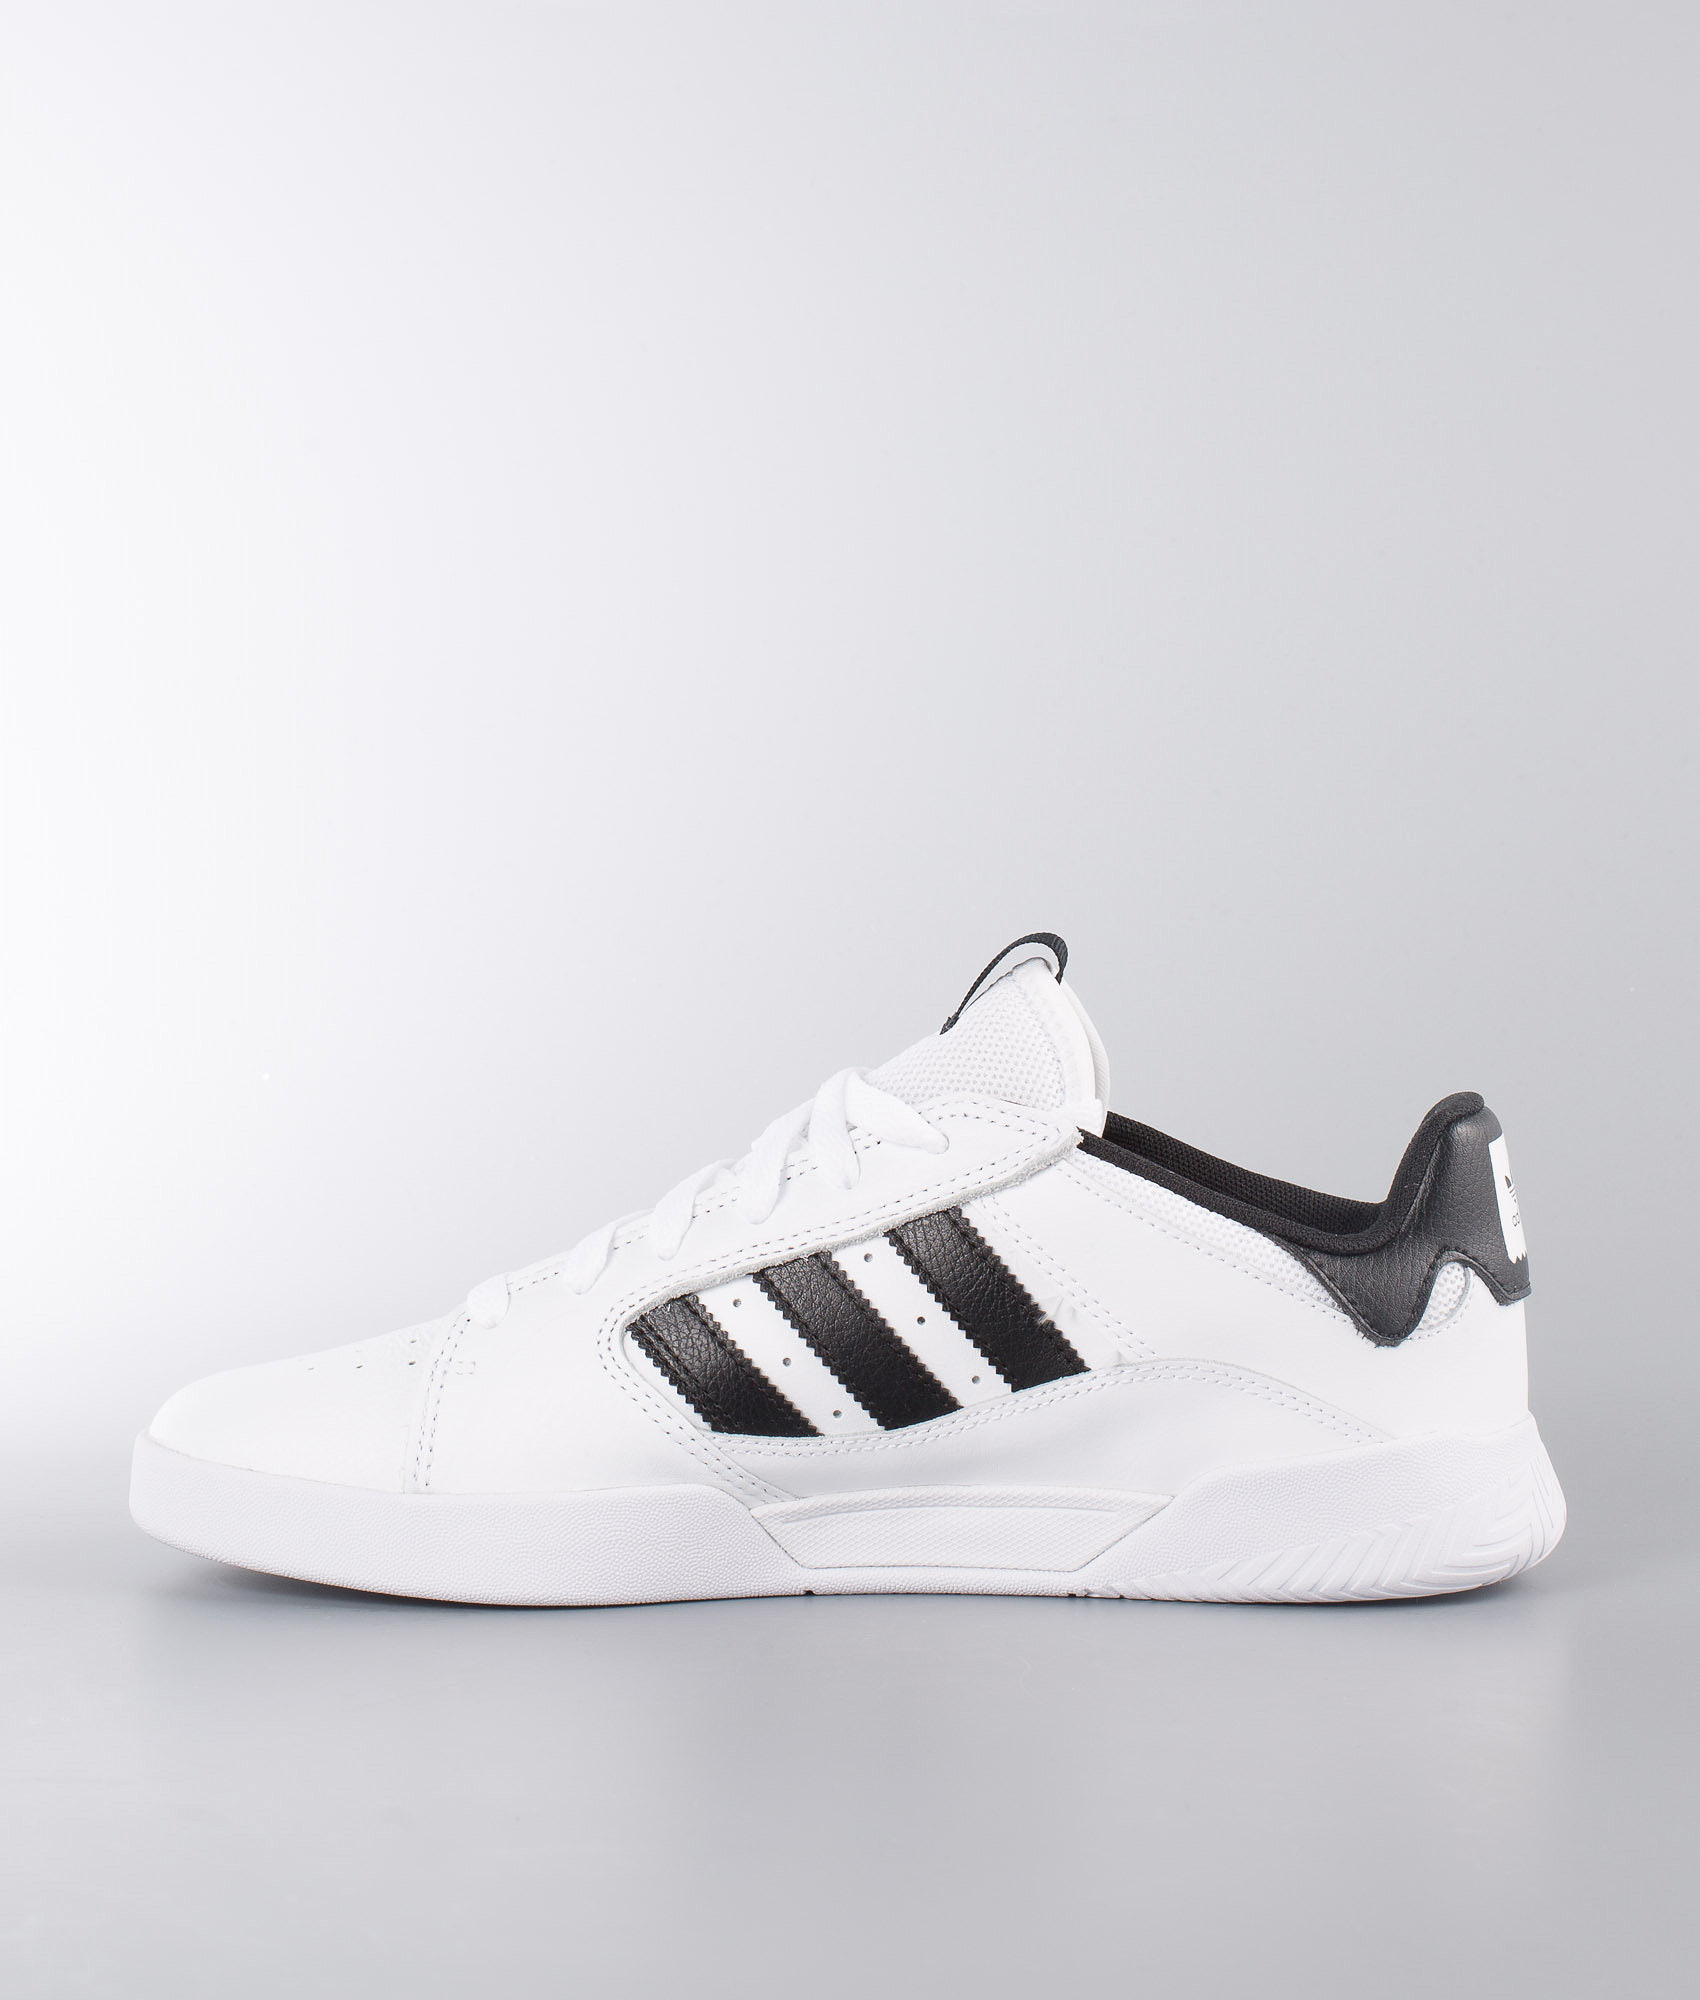 8eb482dd1636 Adidas Skateboarding VRX Low Shoes Ftwr White Core Black Ftwr White ...